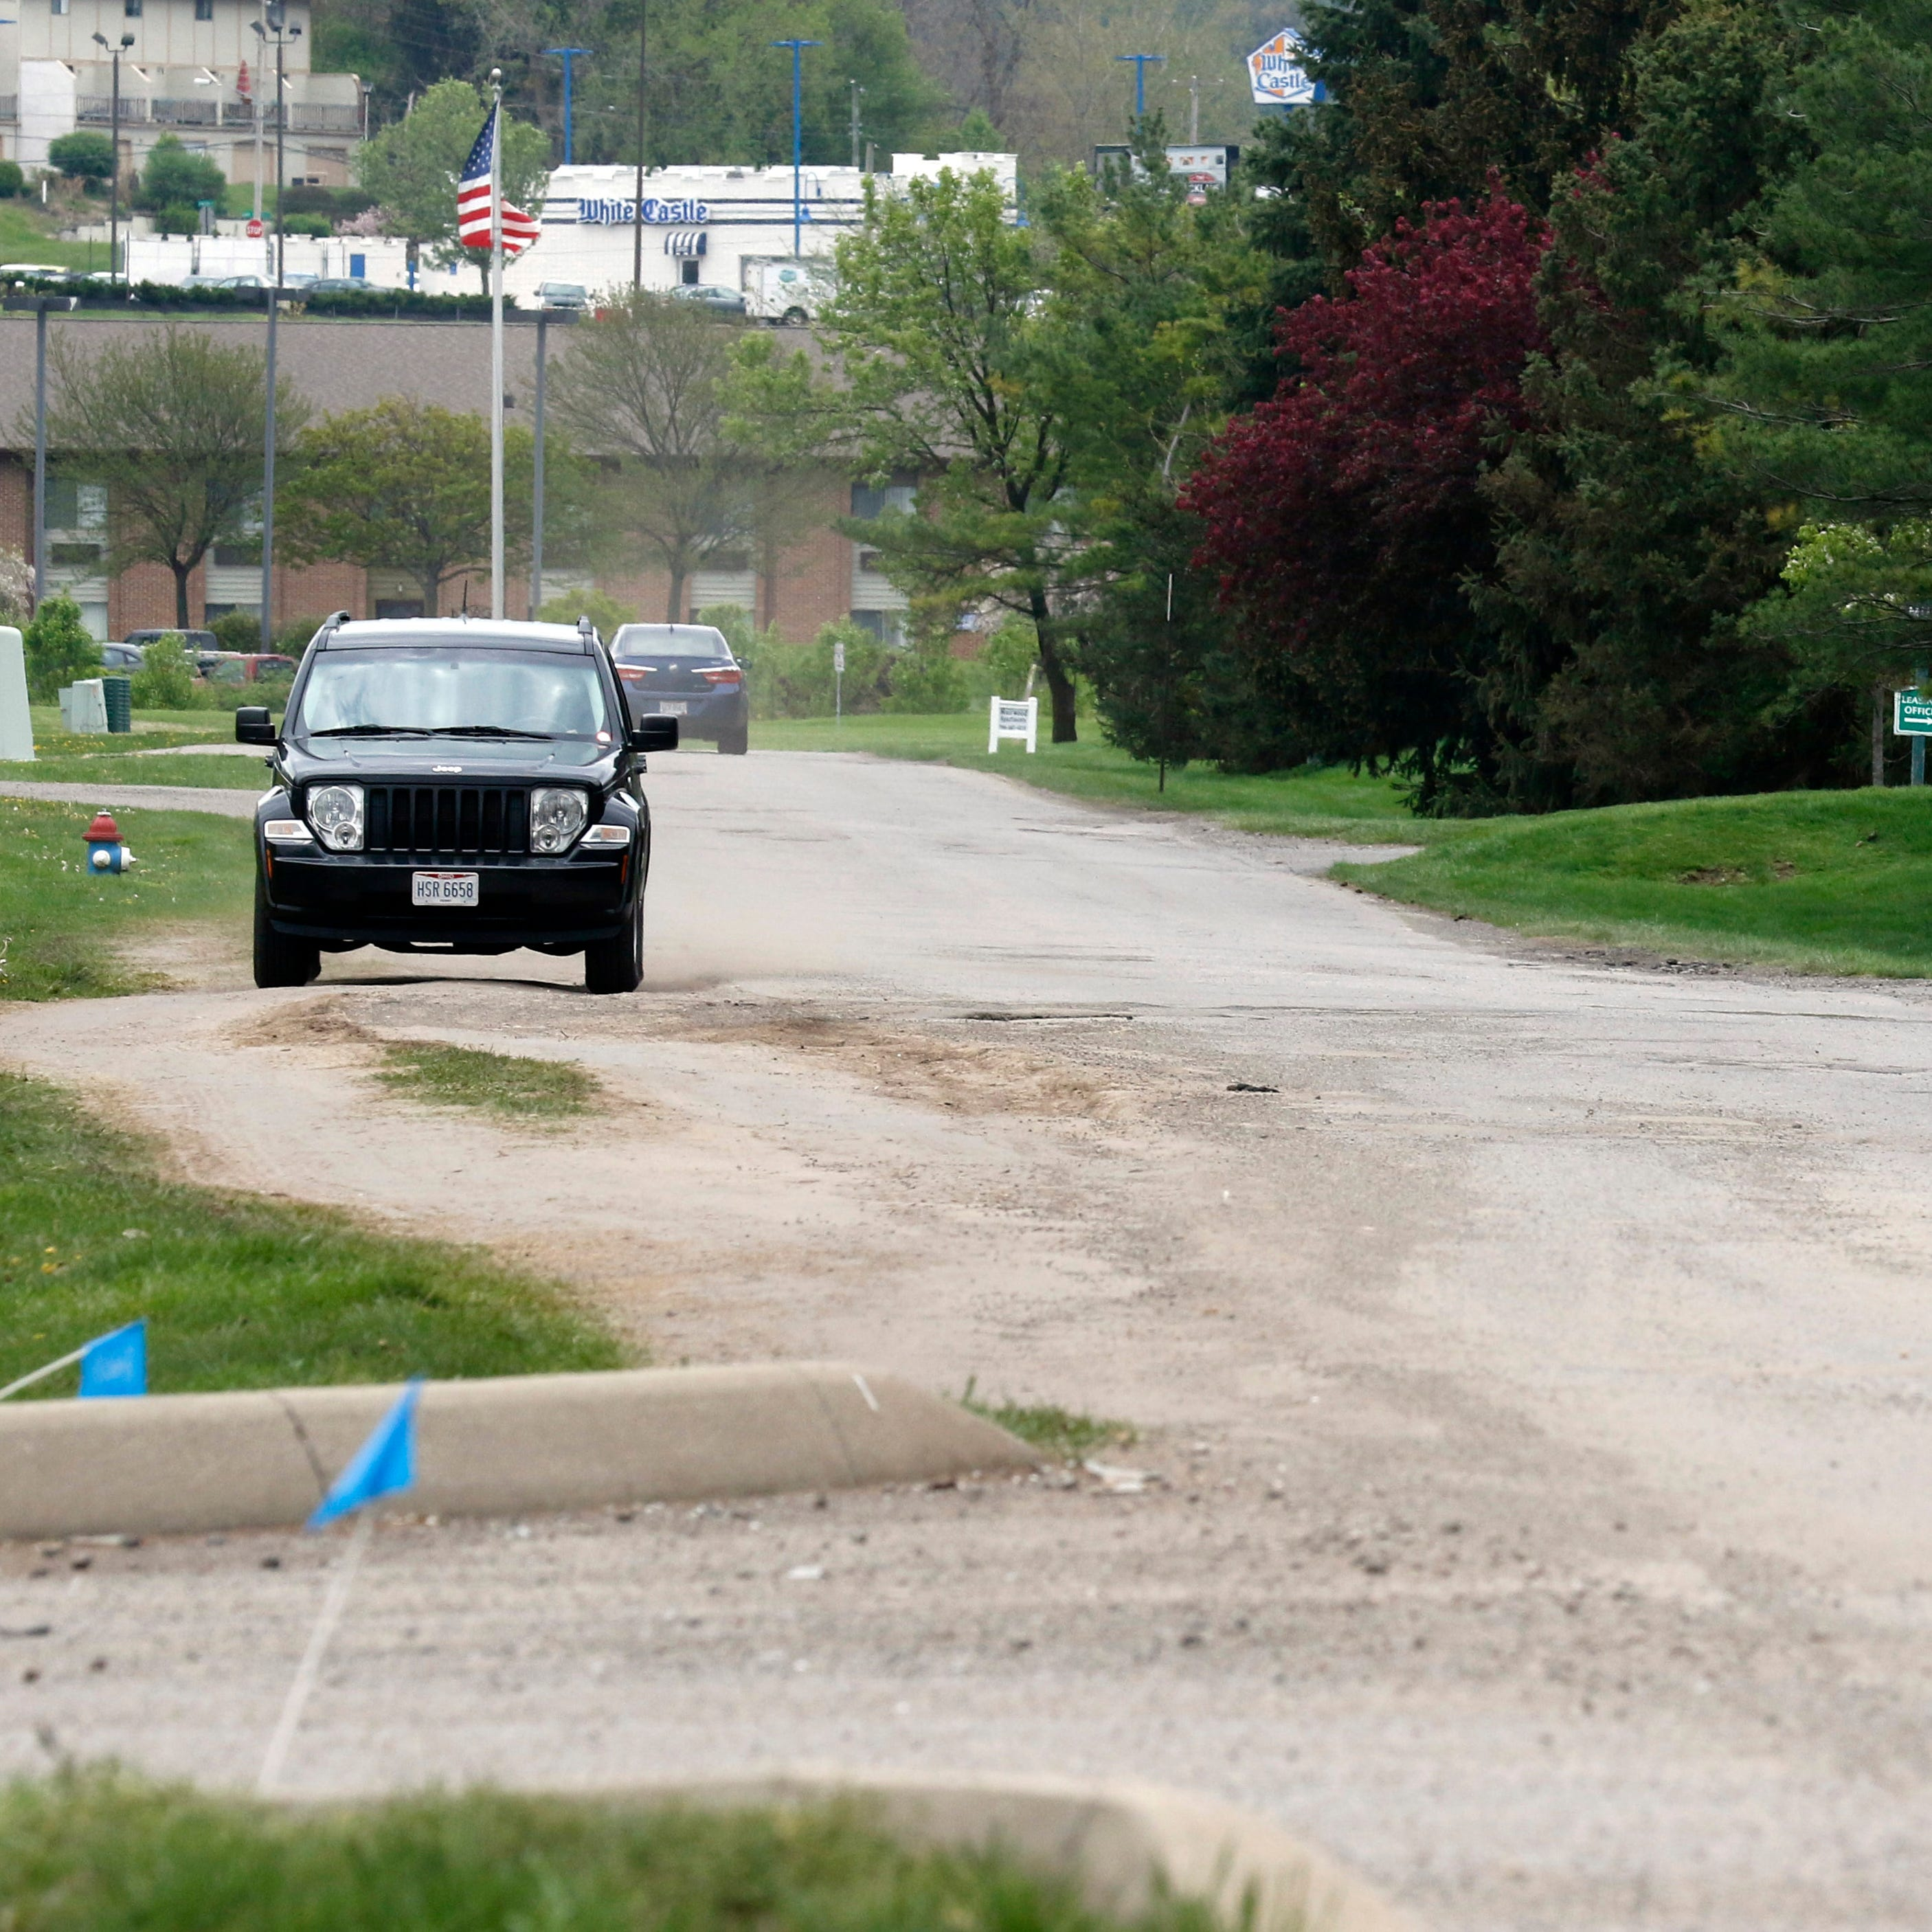 City has limited options to deal with private road